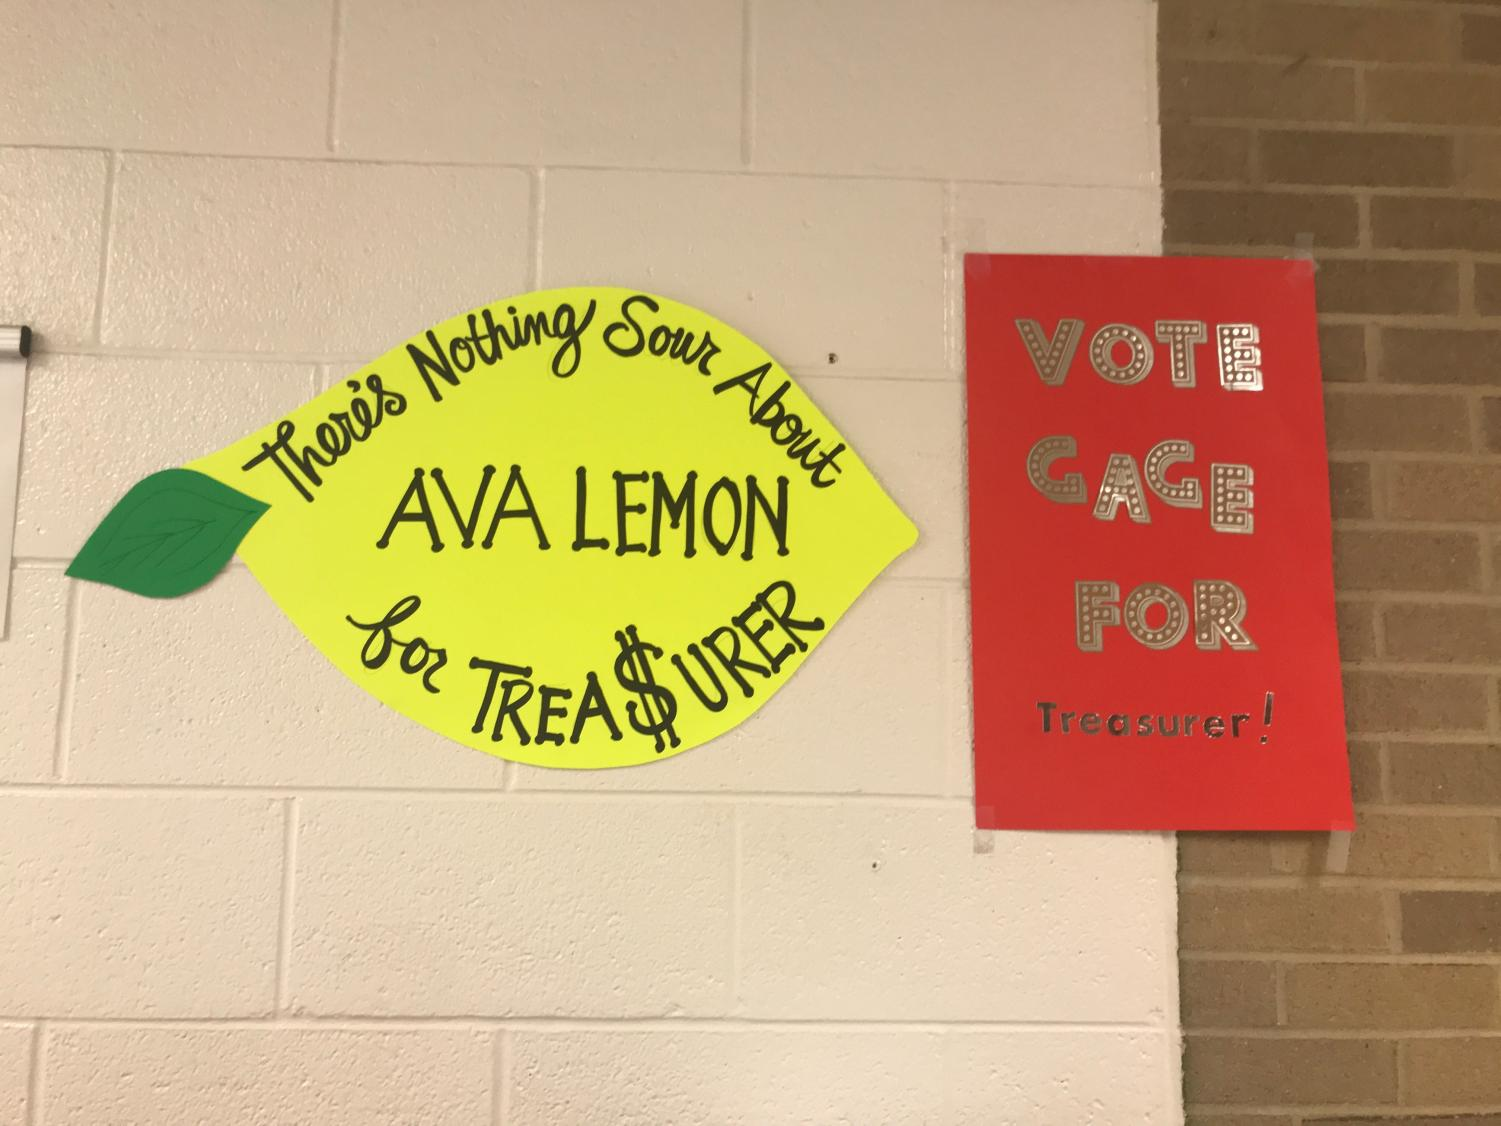 Student council posters.